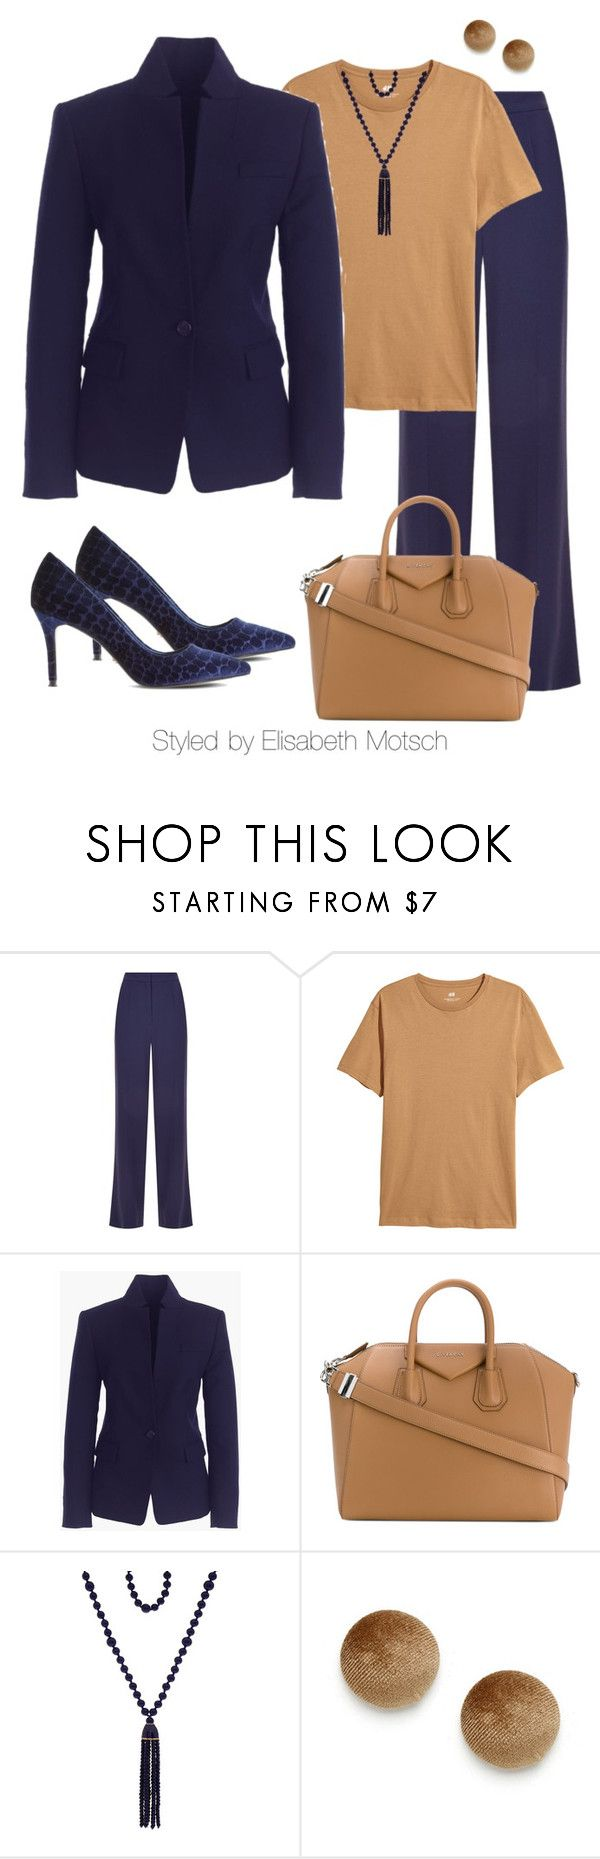 """Individuel Business-Outfit"" by motsch on Polyvore featuring Mode, ESCADA, J.Crew, Givenchy, Kenneth Jay Lane und Dune"